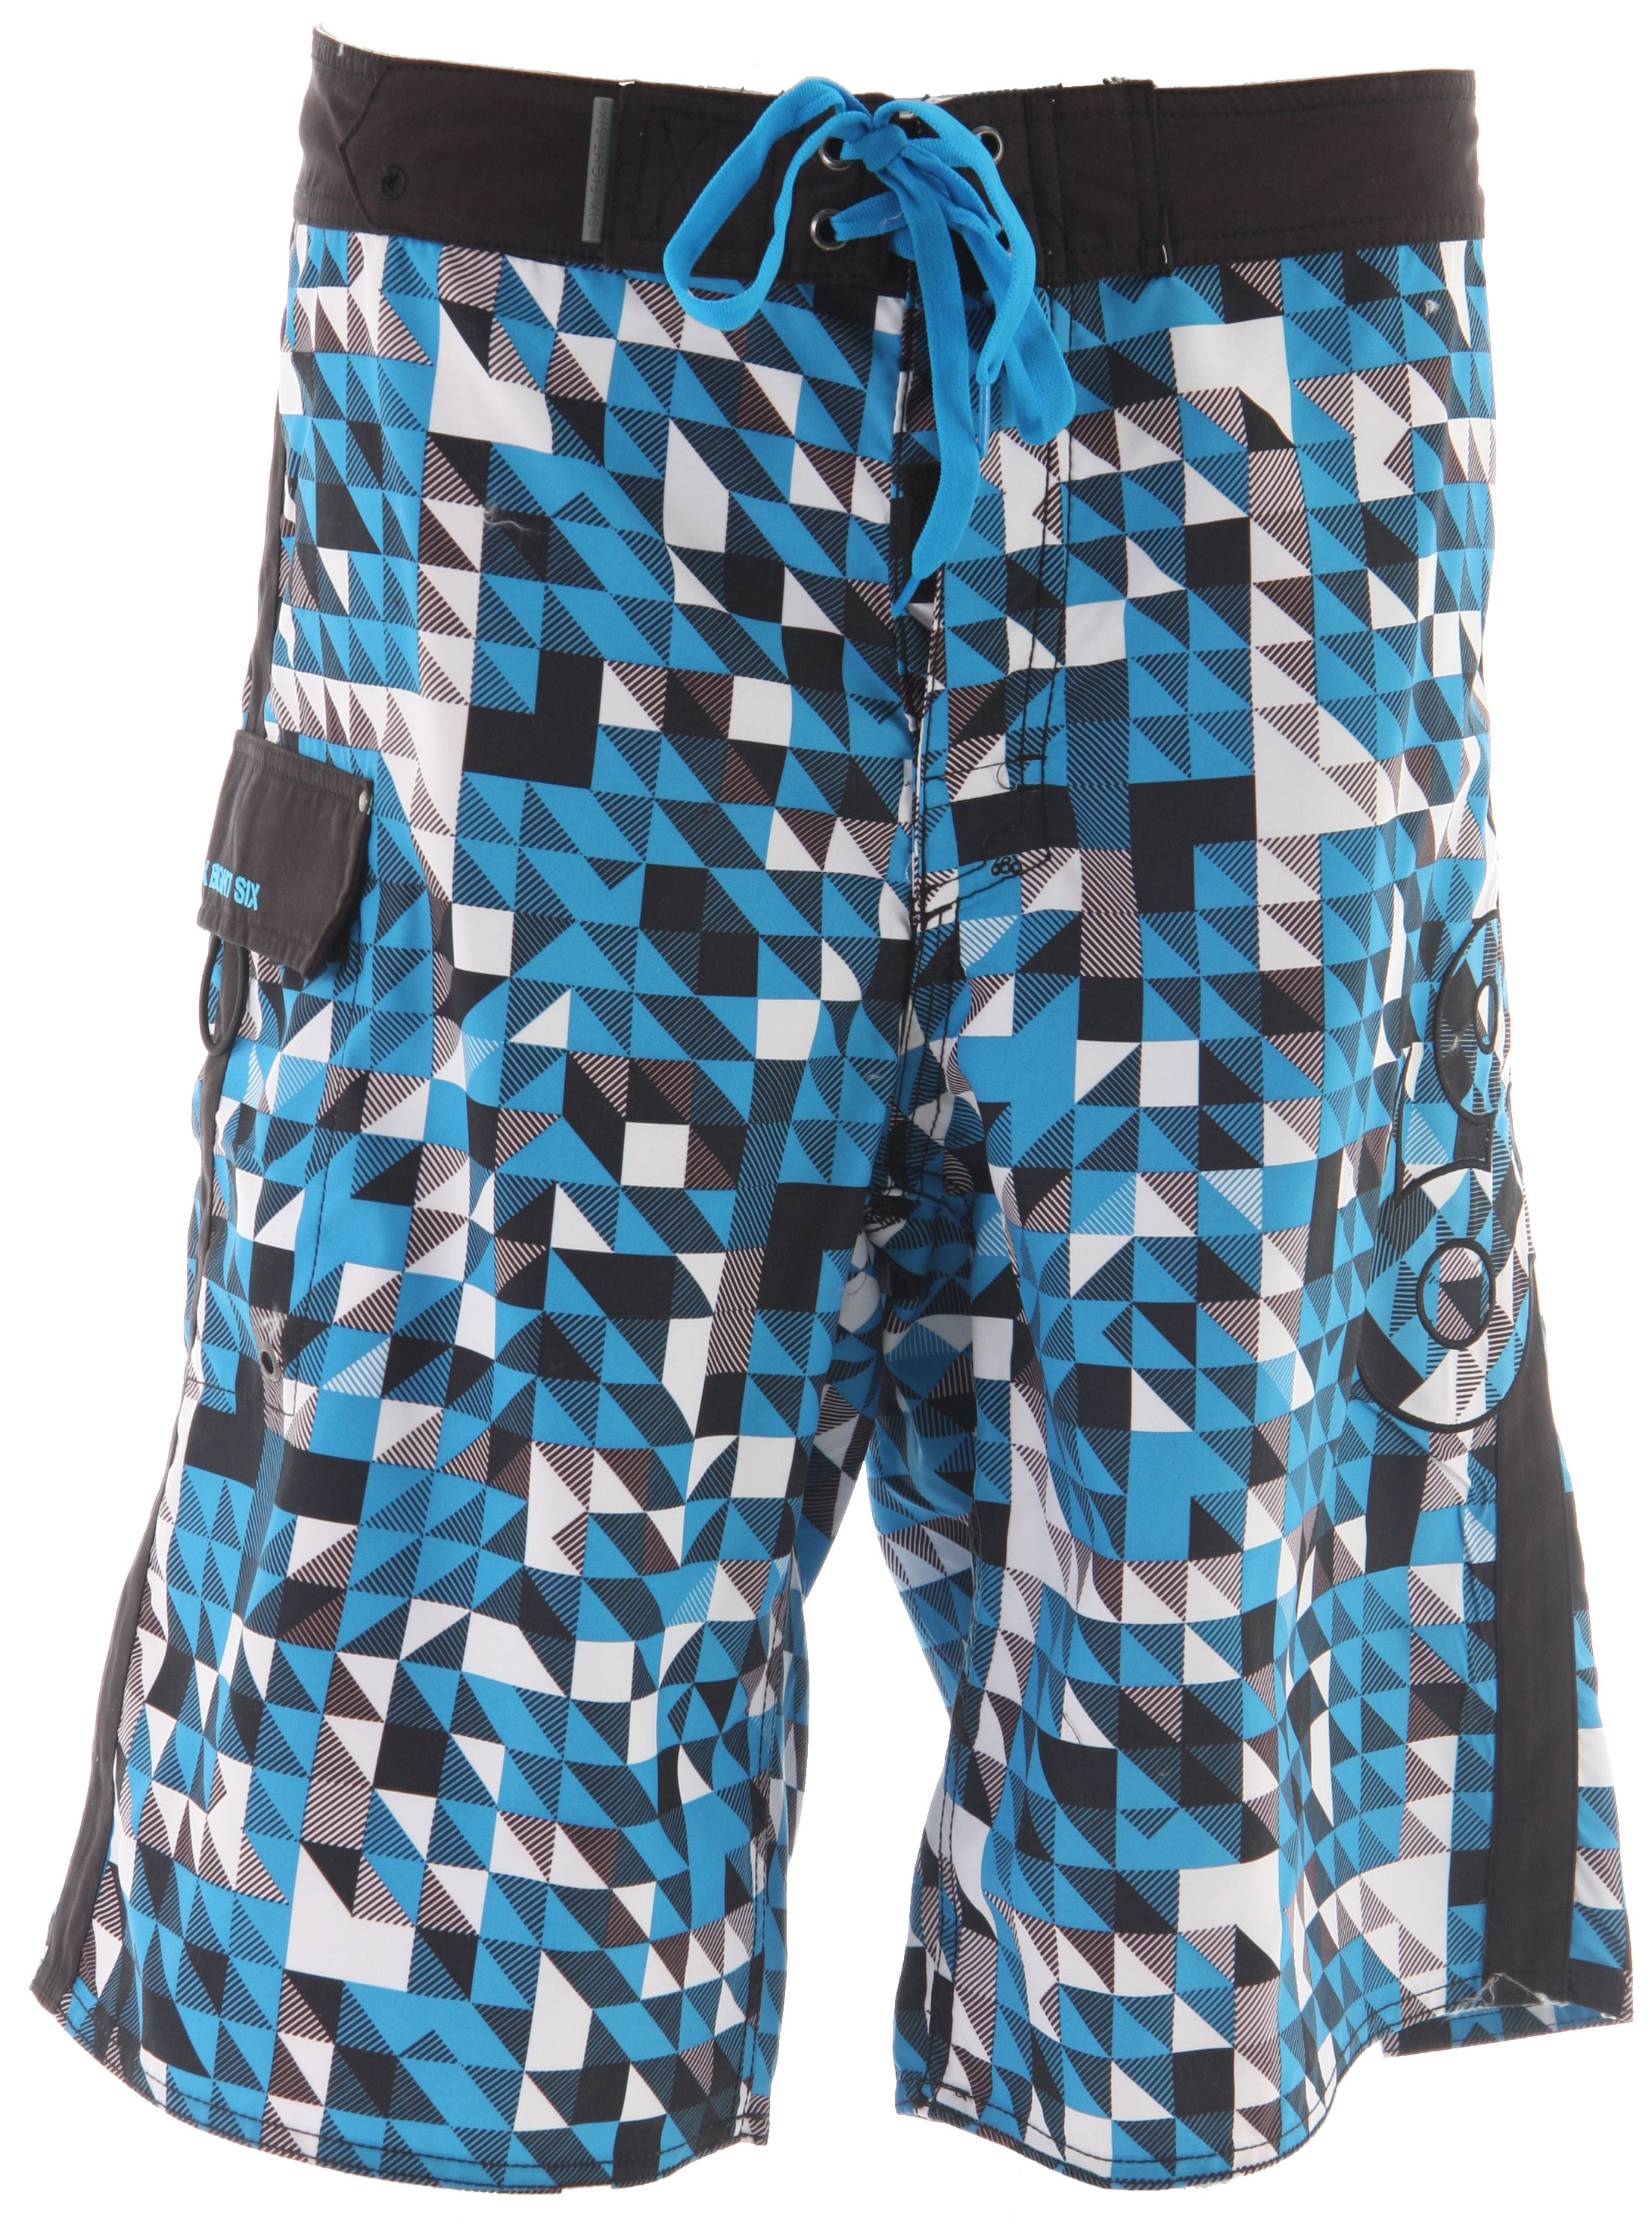 "Surf If you want to look even better, show up with shorts like these! The 686 Shadow Cube boardshorts you are going to fall in love with. These stylish made shorts a 22"" average outseam and are 100% polyester micro fiber. Enjoy the spandex fly gusset and don't forget to use the waistband stash pocket. With an applique logo and the solid contrast trim, who wanted want shorts that look and feel this good? Your sure to turn heads in a good way!Key Features of the 686 Shadow Cube Boardshorts: 22"" Average Outseam 100% Polyester Micro Fiber Spandex fly gusset Waistband stash pocket Logo applique Solid contrast trim - $54.95"